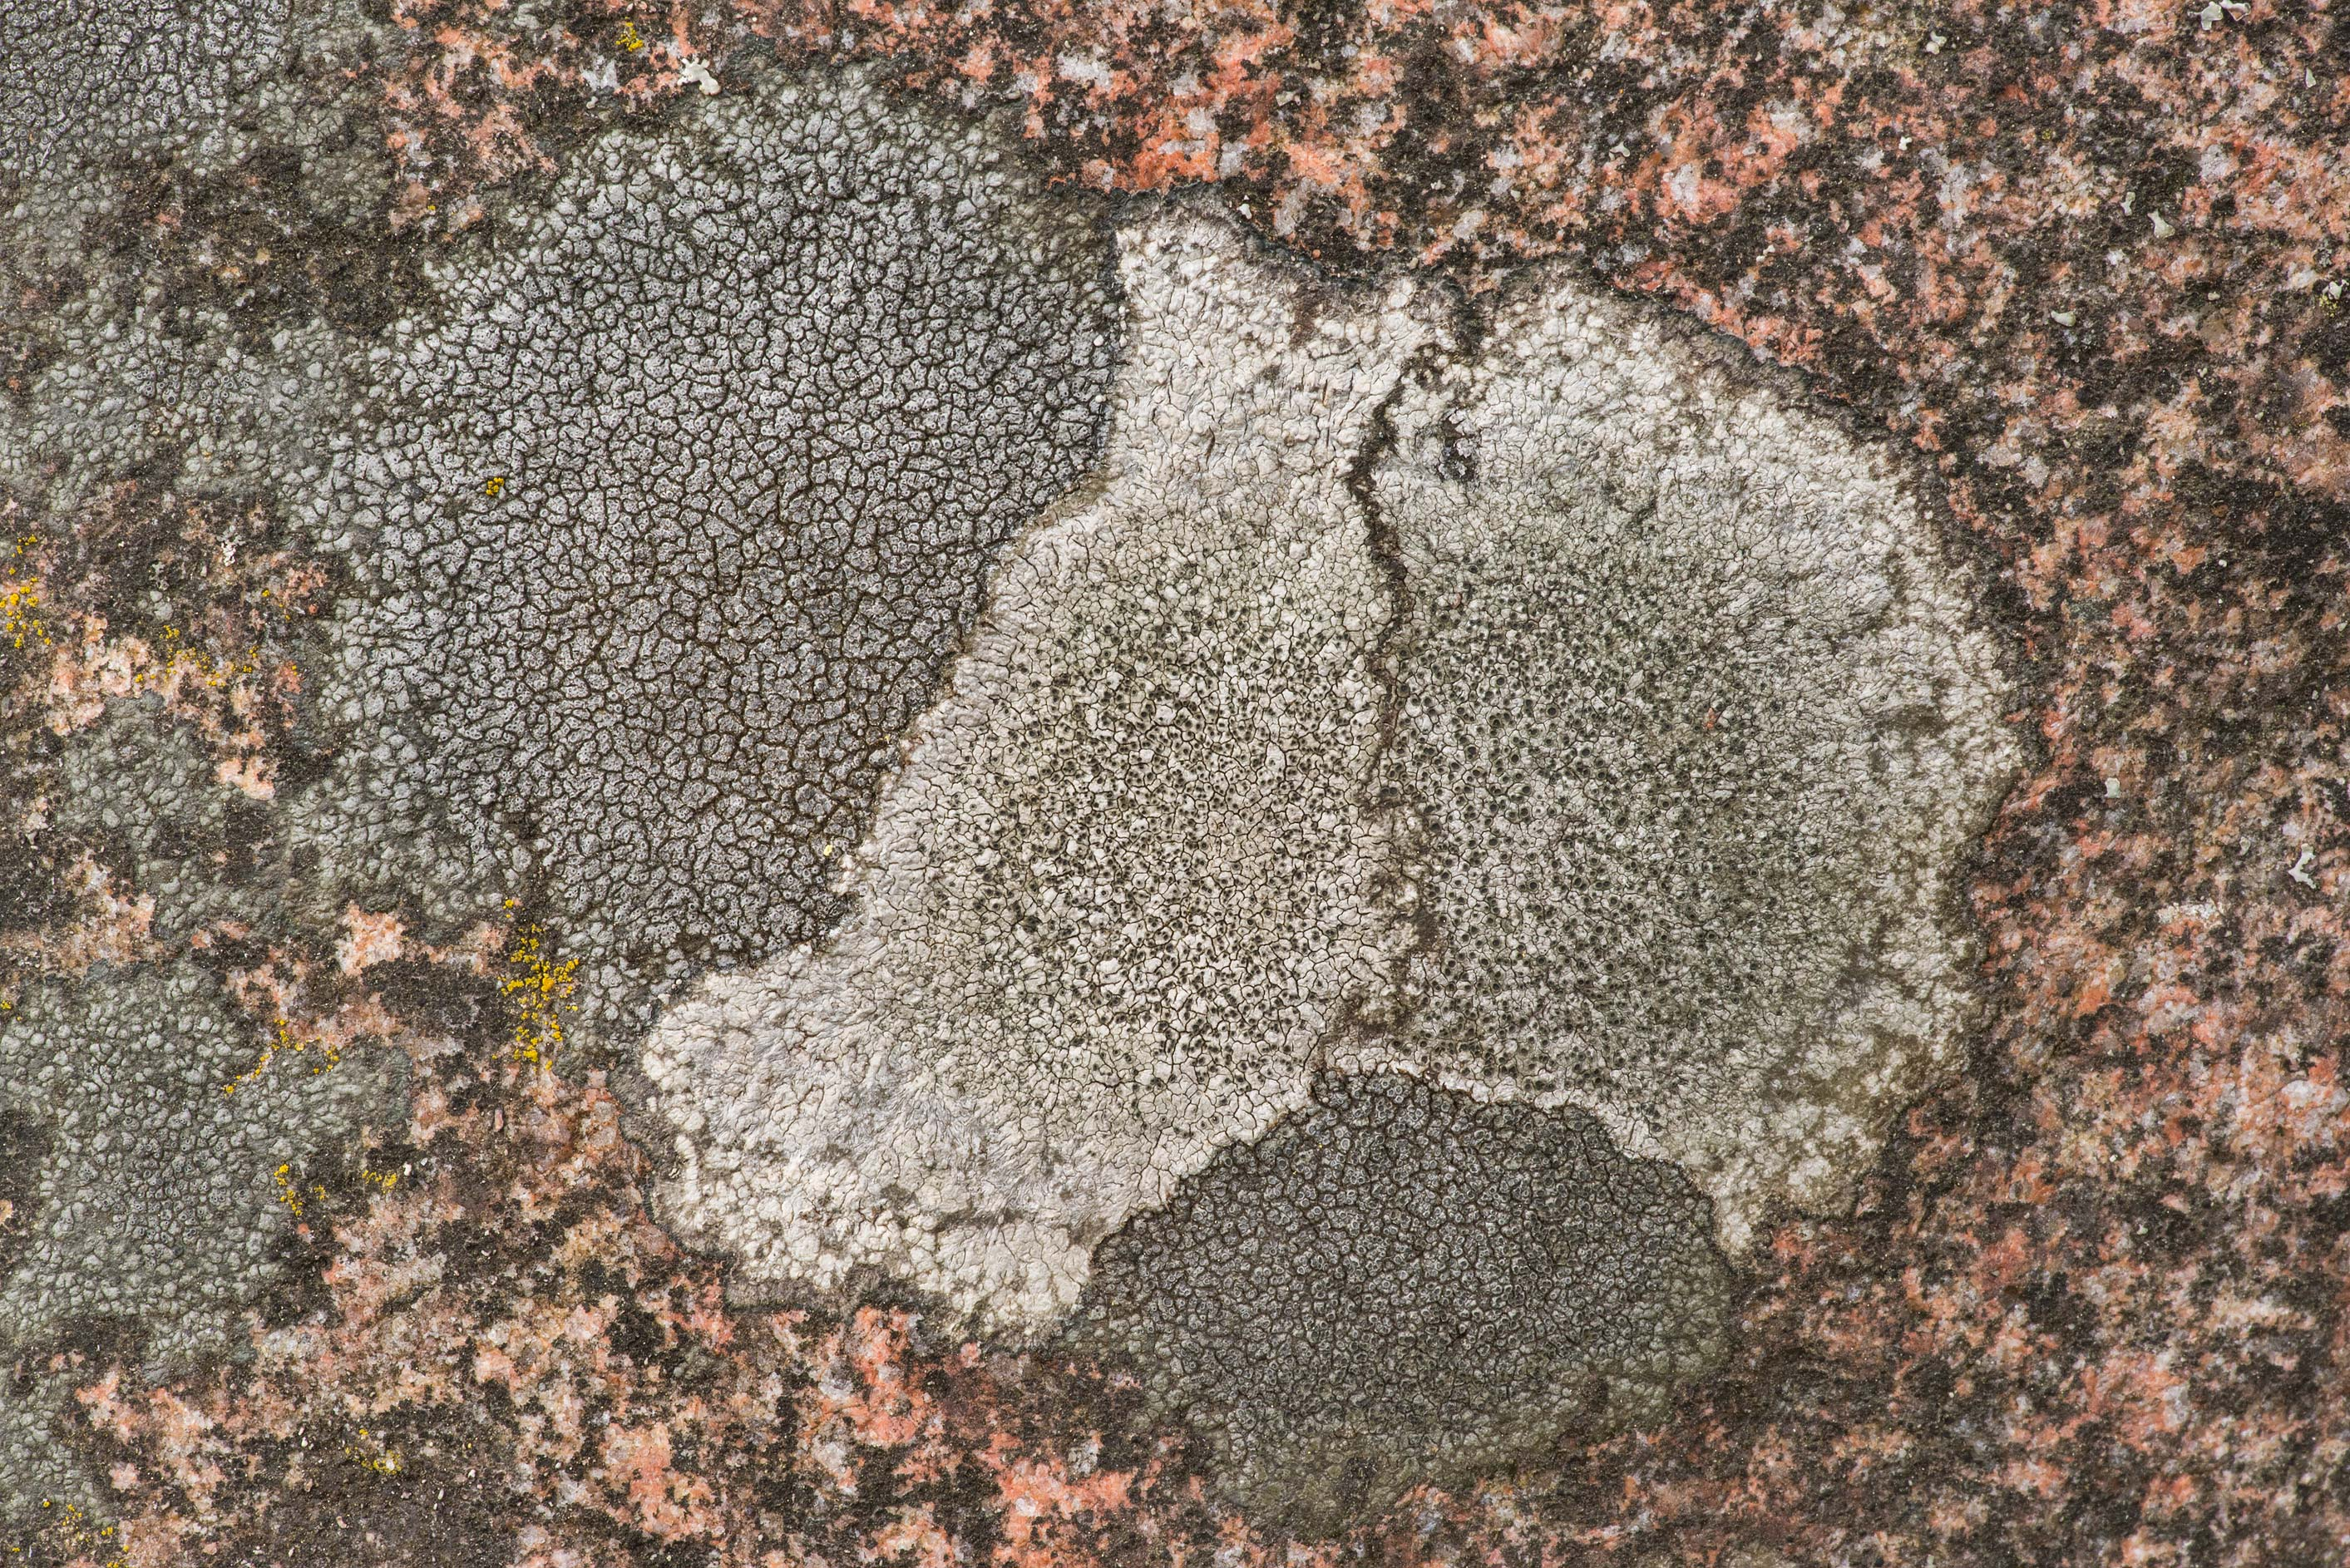 Pattern of saxicolous crustose lichens on a rock...Lake, east from St.Petersburg. Russia